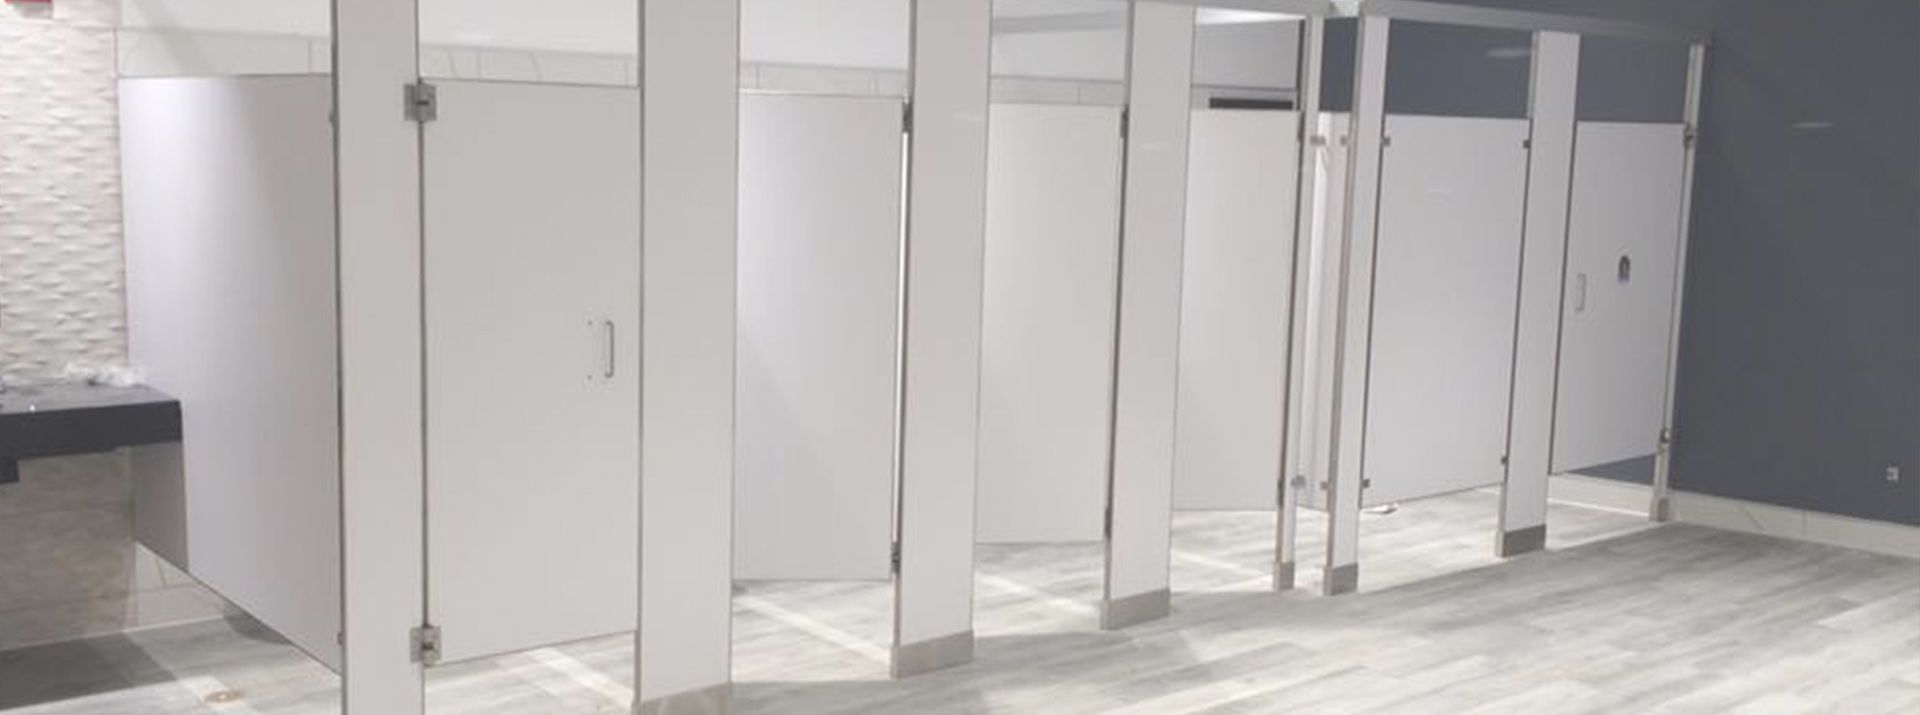 Watkins Accessories Bathroom Partitions Division 10 Specialist Tampa